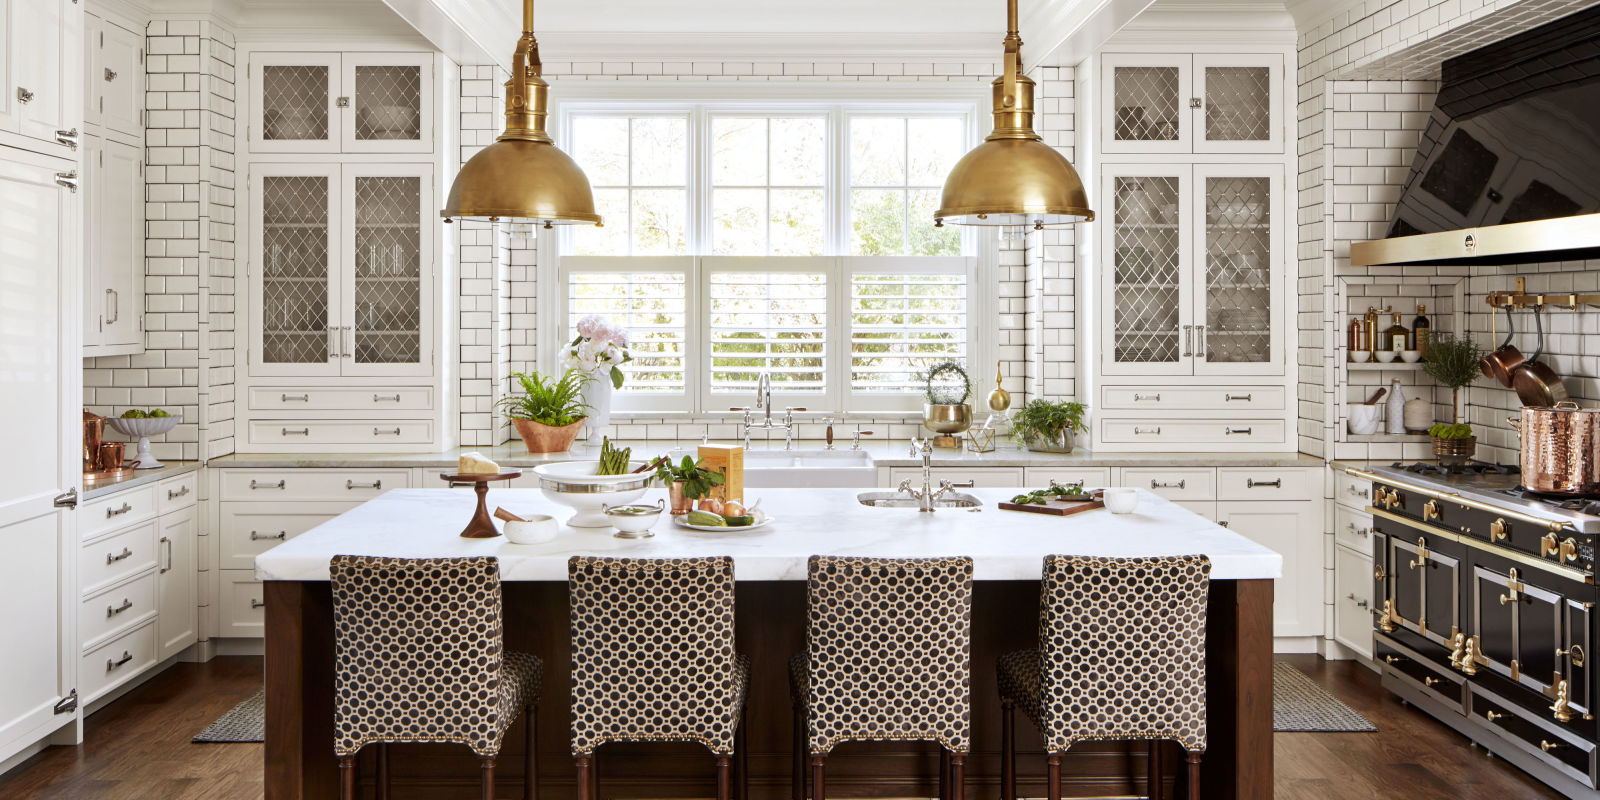 8 kitchen tips from restaurant pros rebekah zaveloff for Kitchen ideas house beautiful